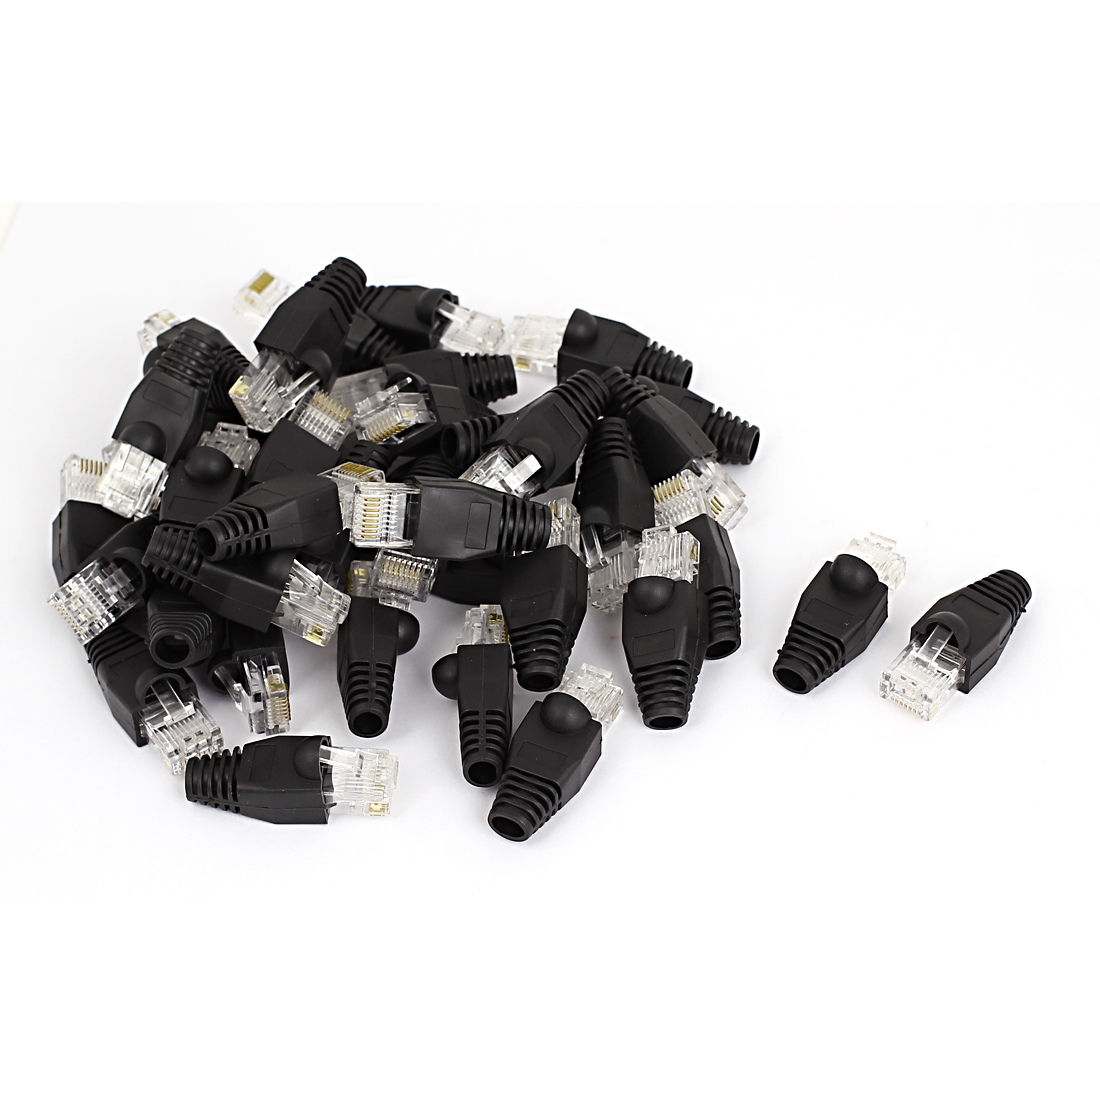 40 Pcs 8P8C RJ45 Head Shielded Modular Lead Connectors w Boots Cover Black